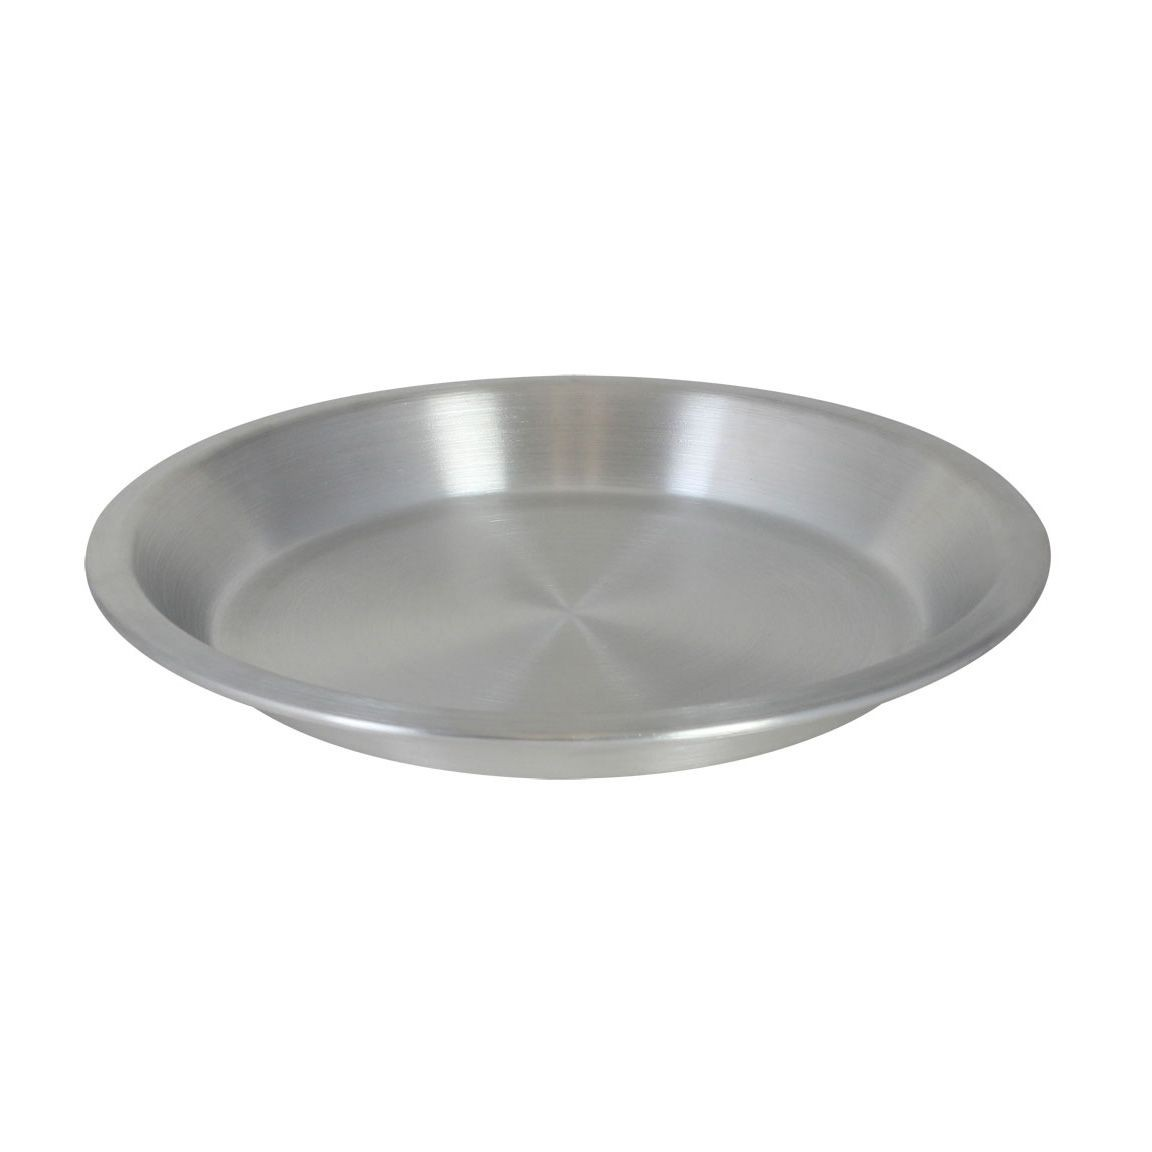 Thunder Group ALPN009 Pie Pan 9""